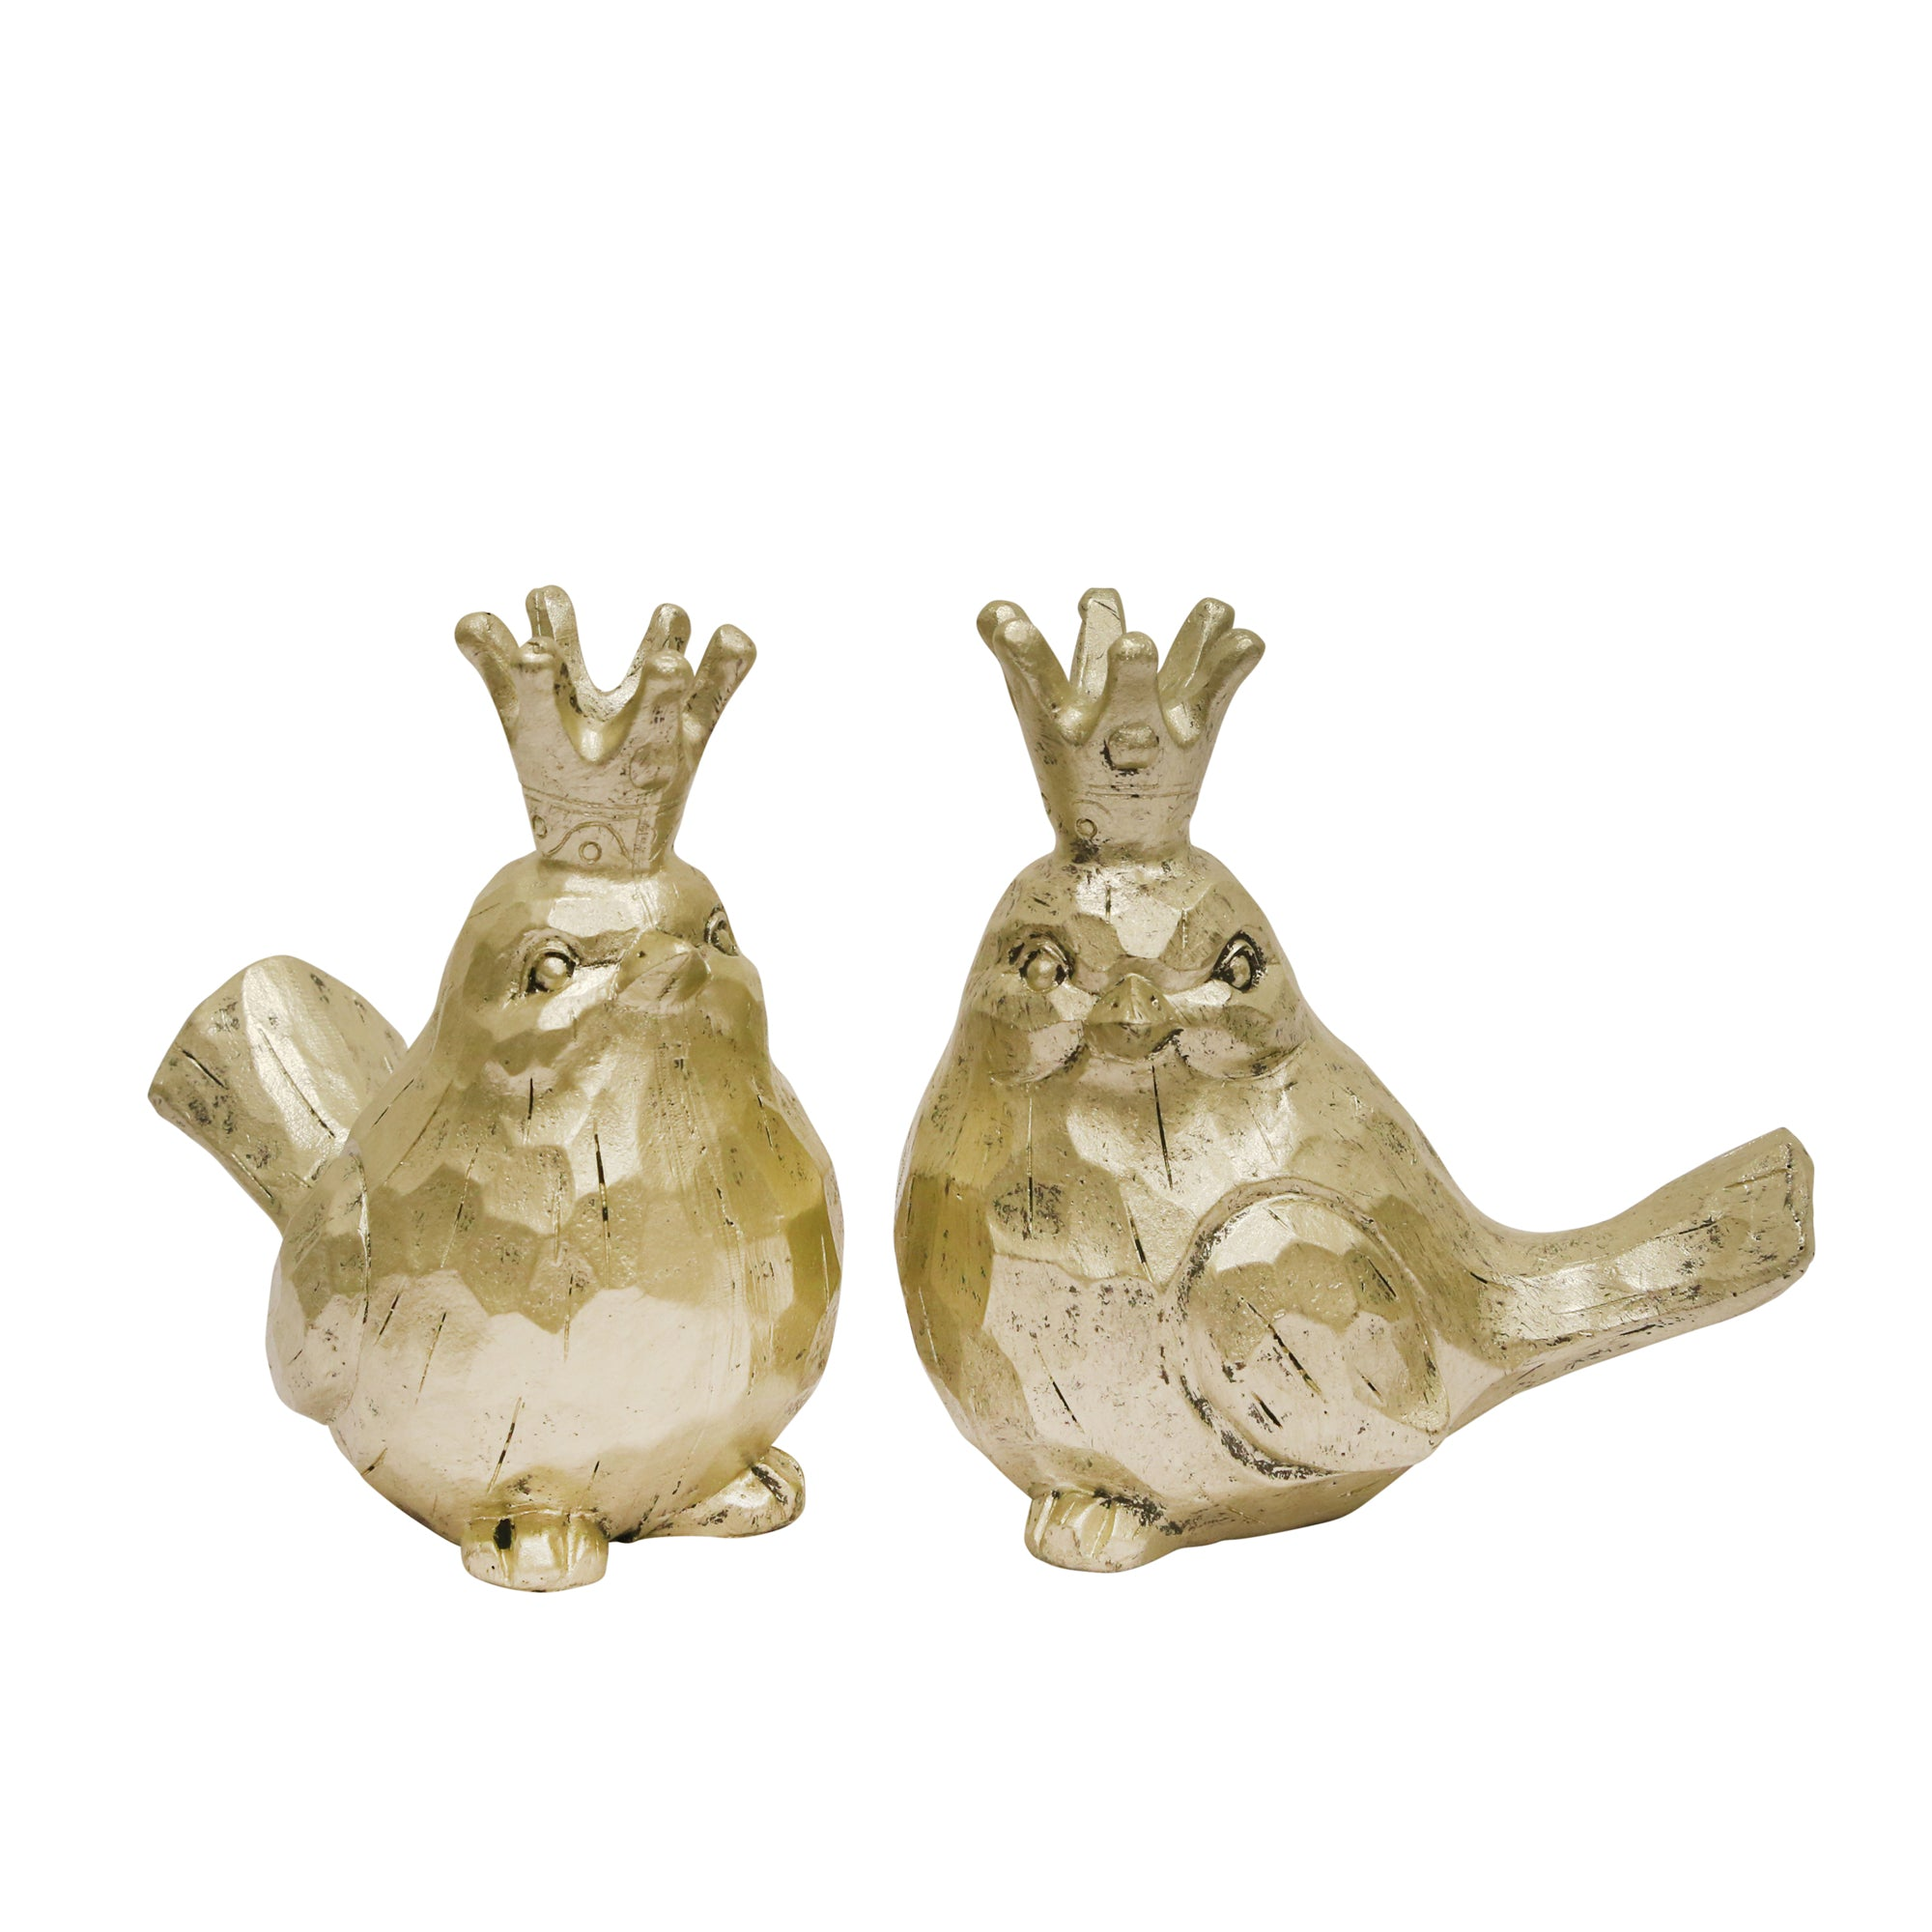 S/2 GOLD BIRDS W/ CROWNS